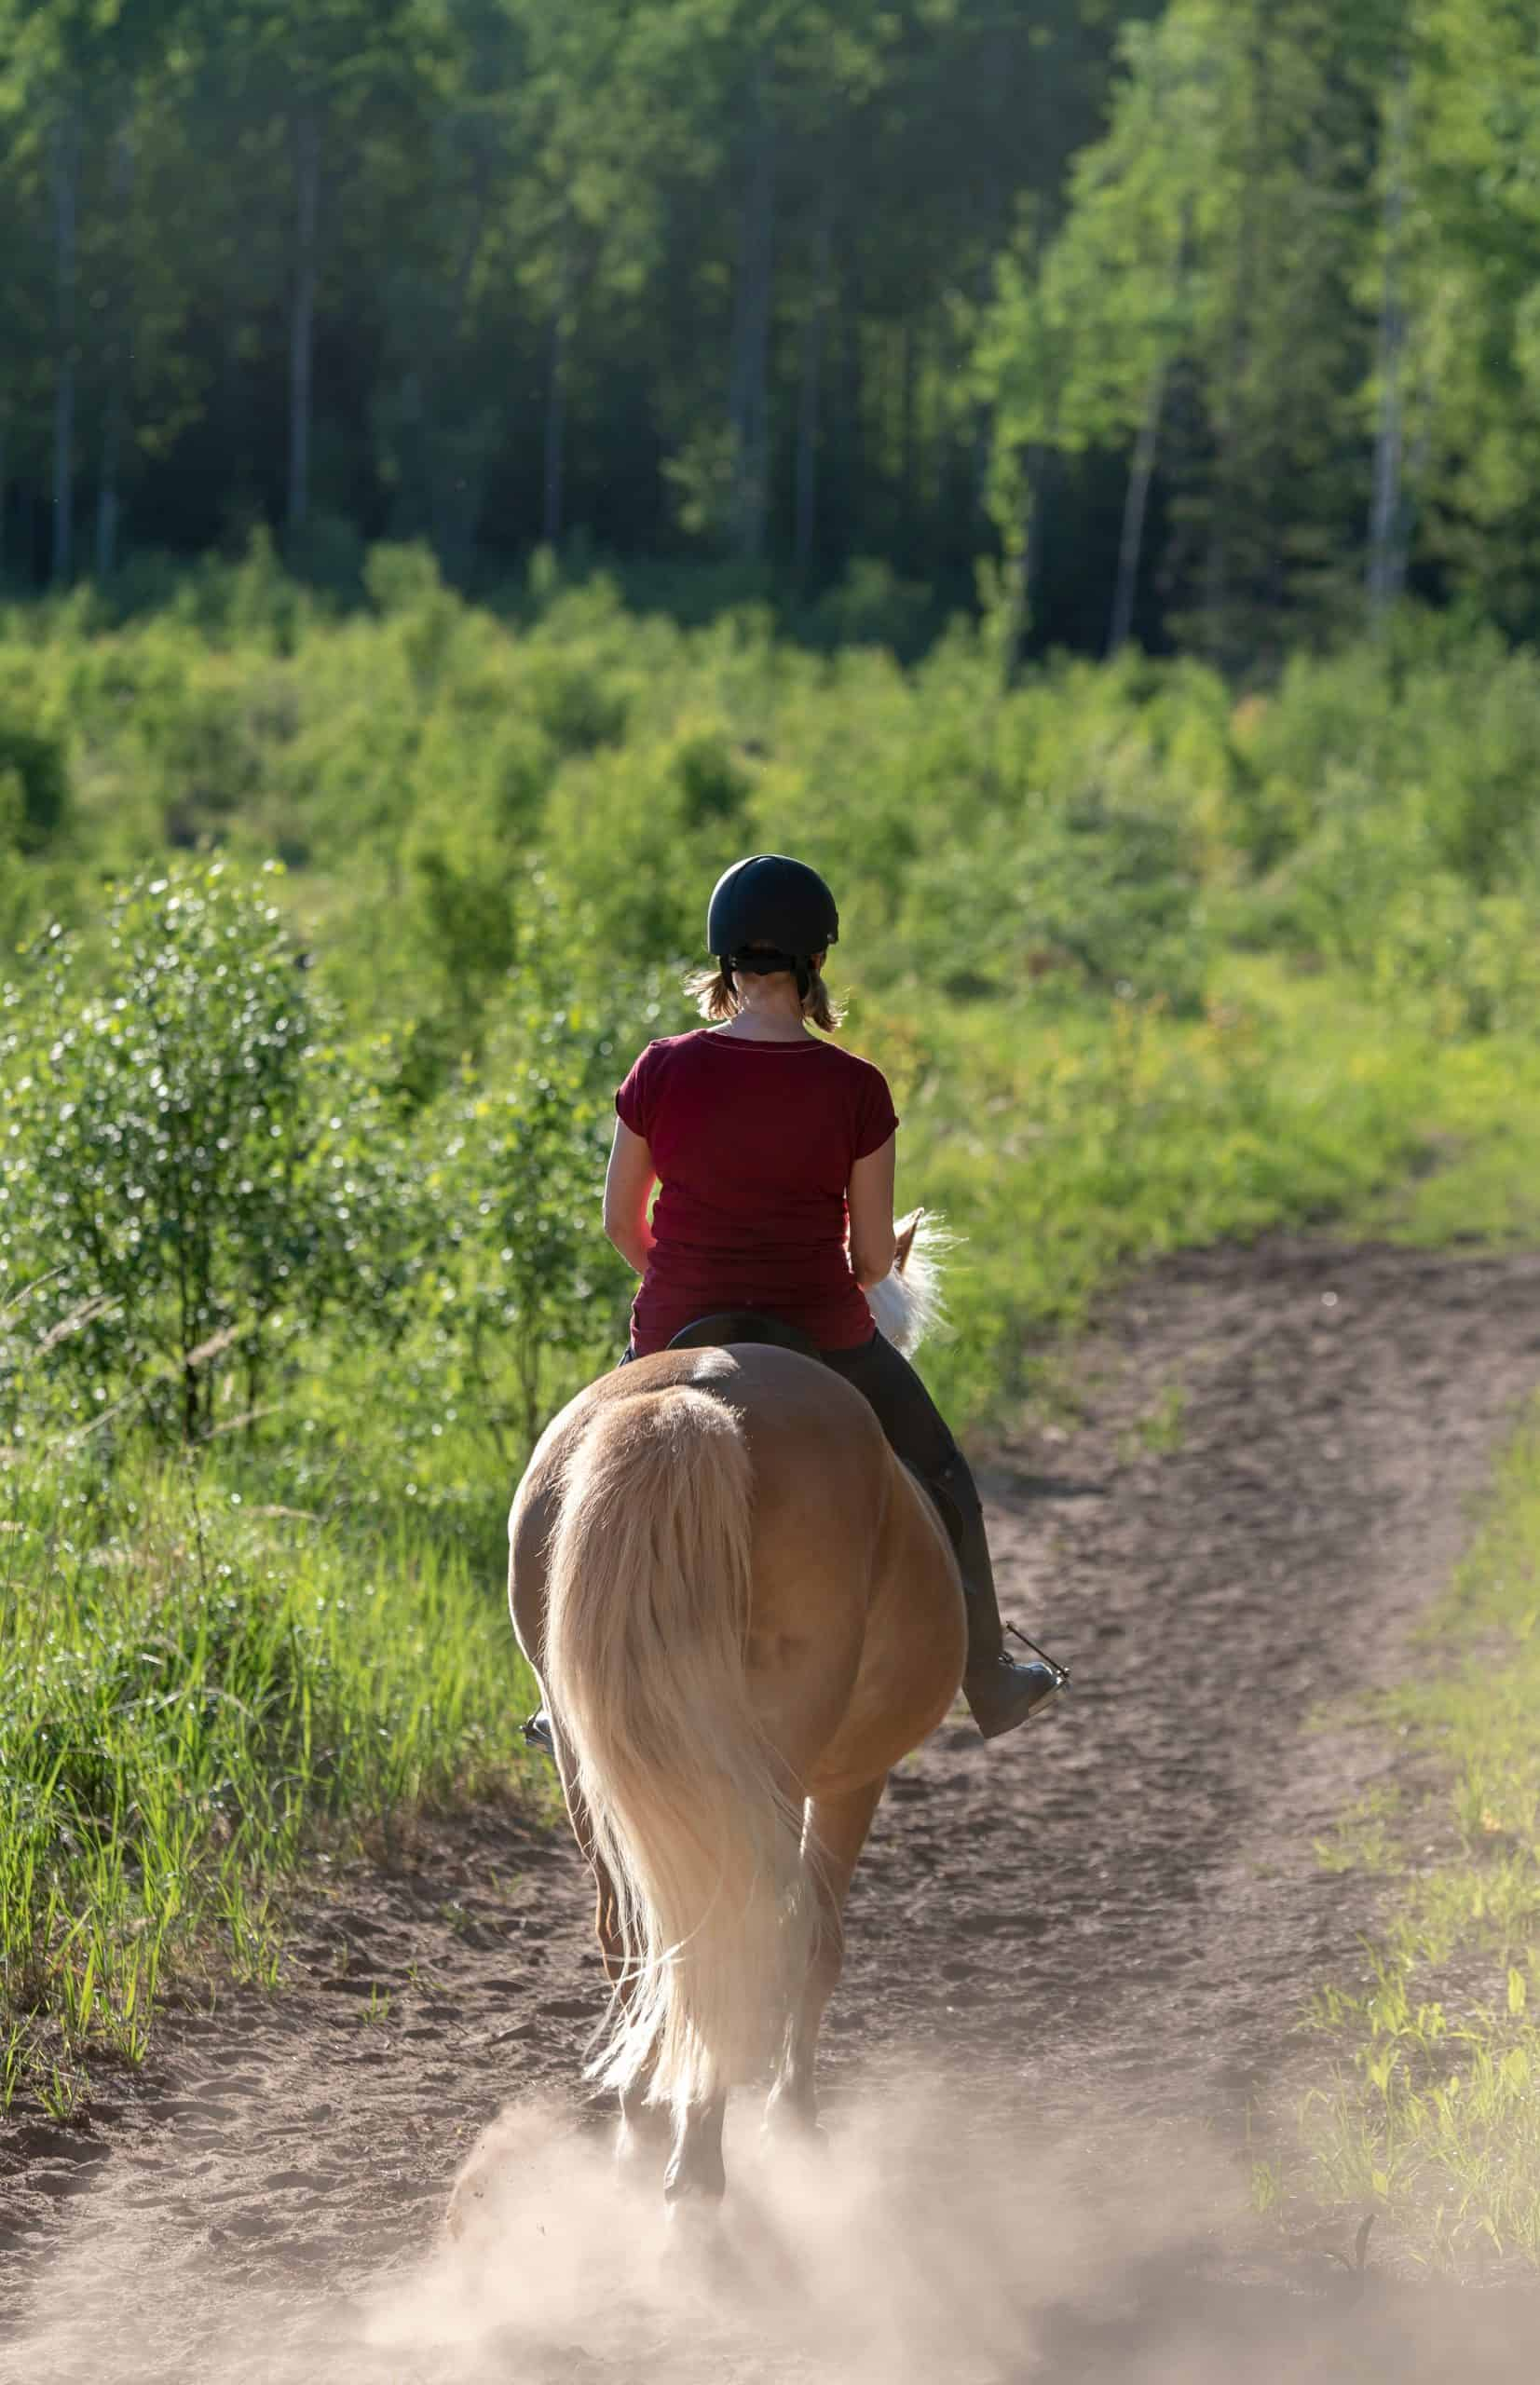 sitting trot Woman horseback riding in forest